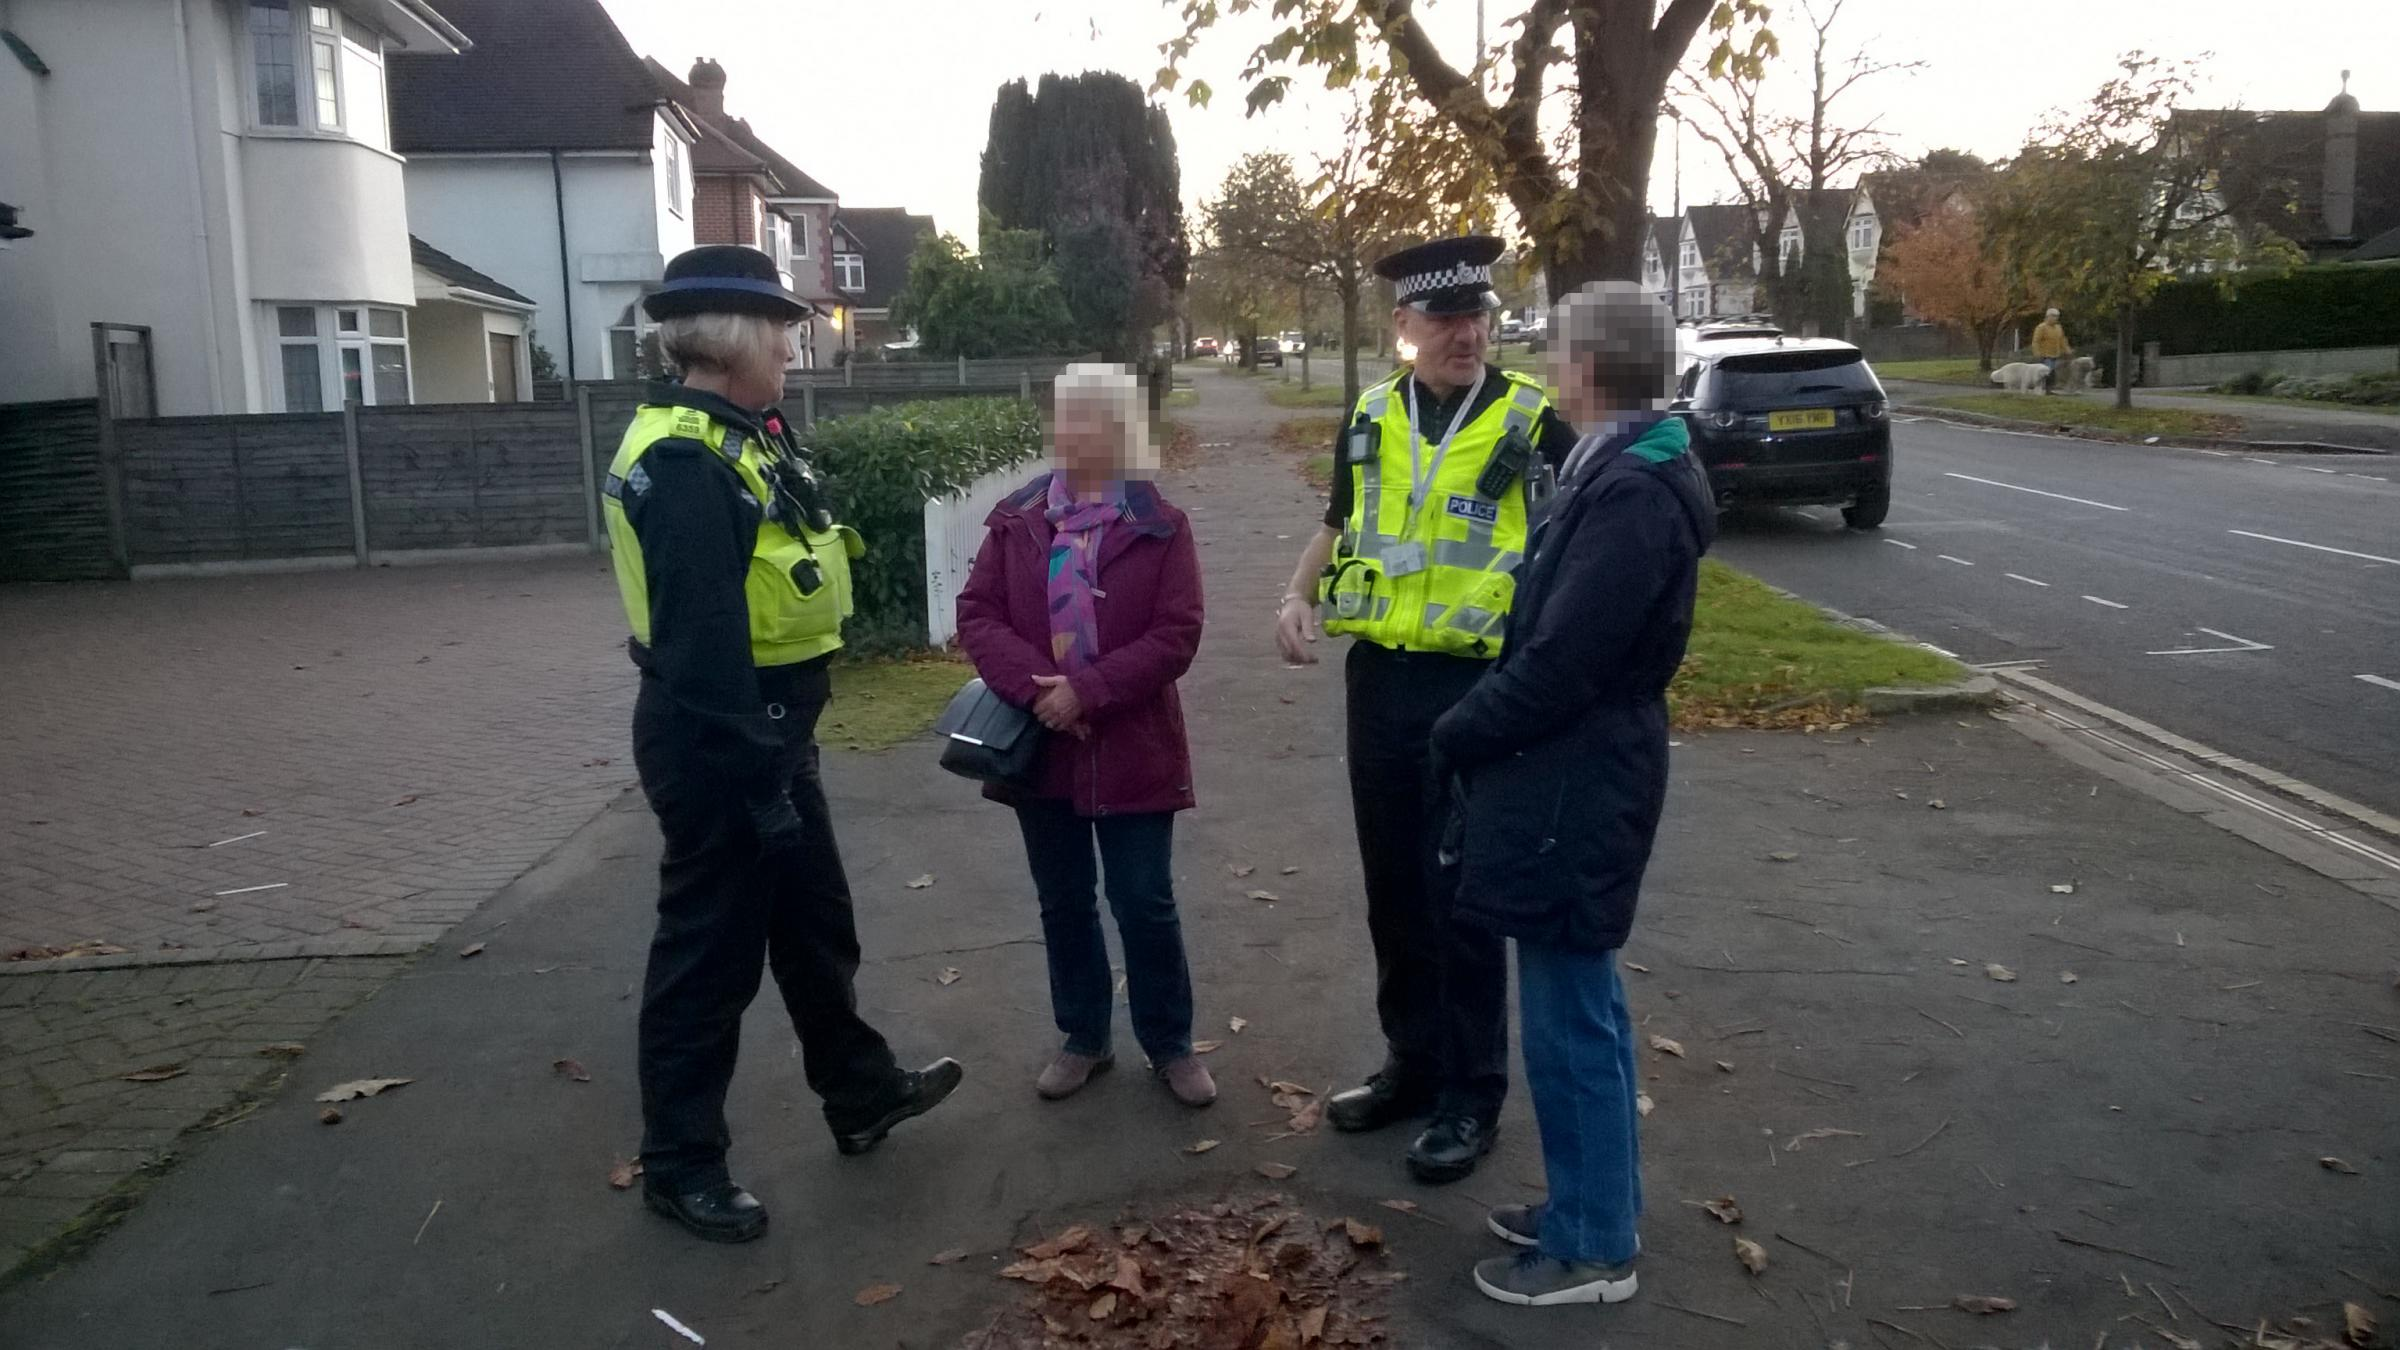 Hertfordshire Constabulary advising residents on how to keep their valuables safe